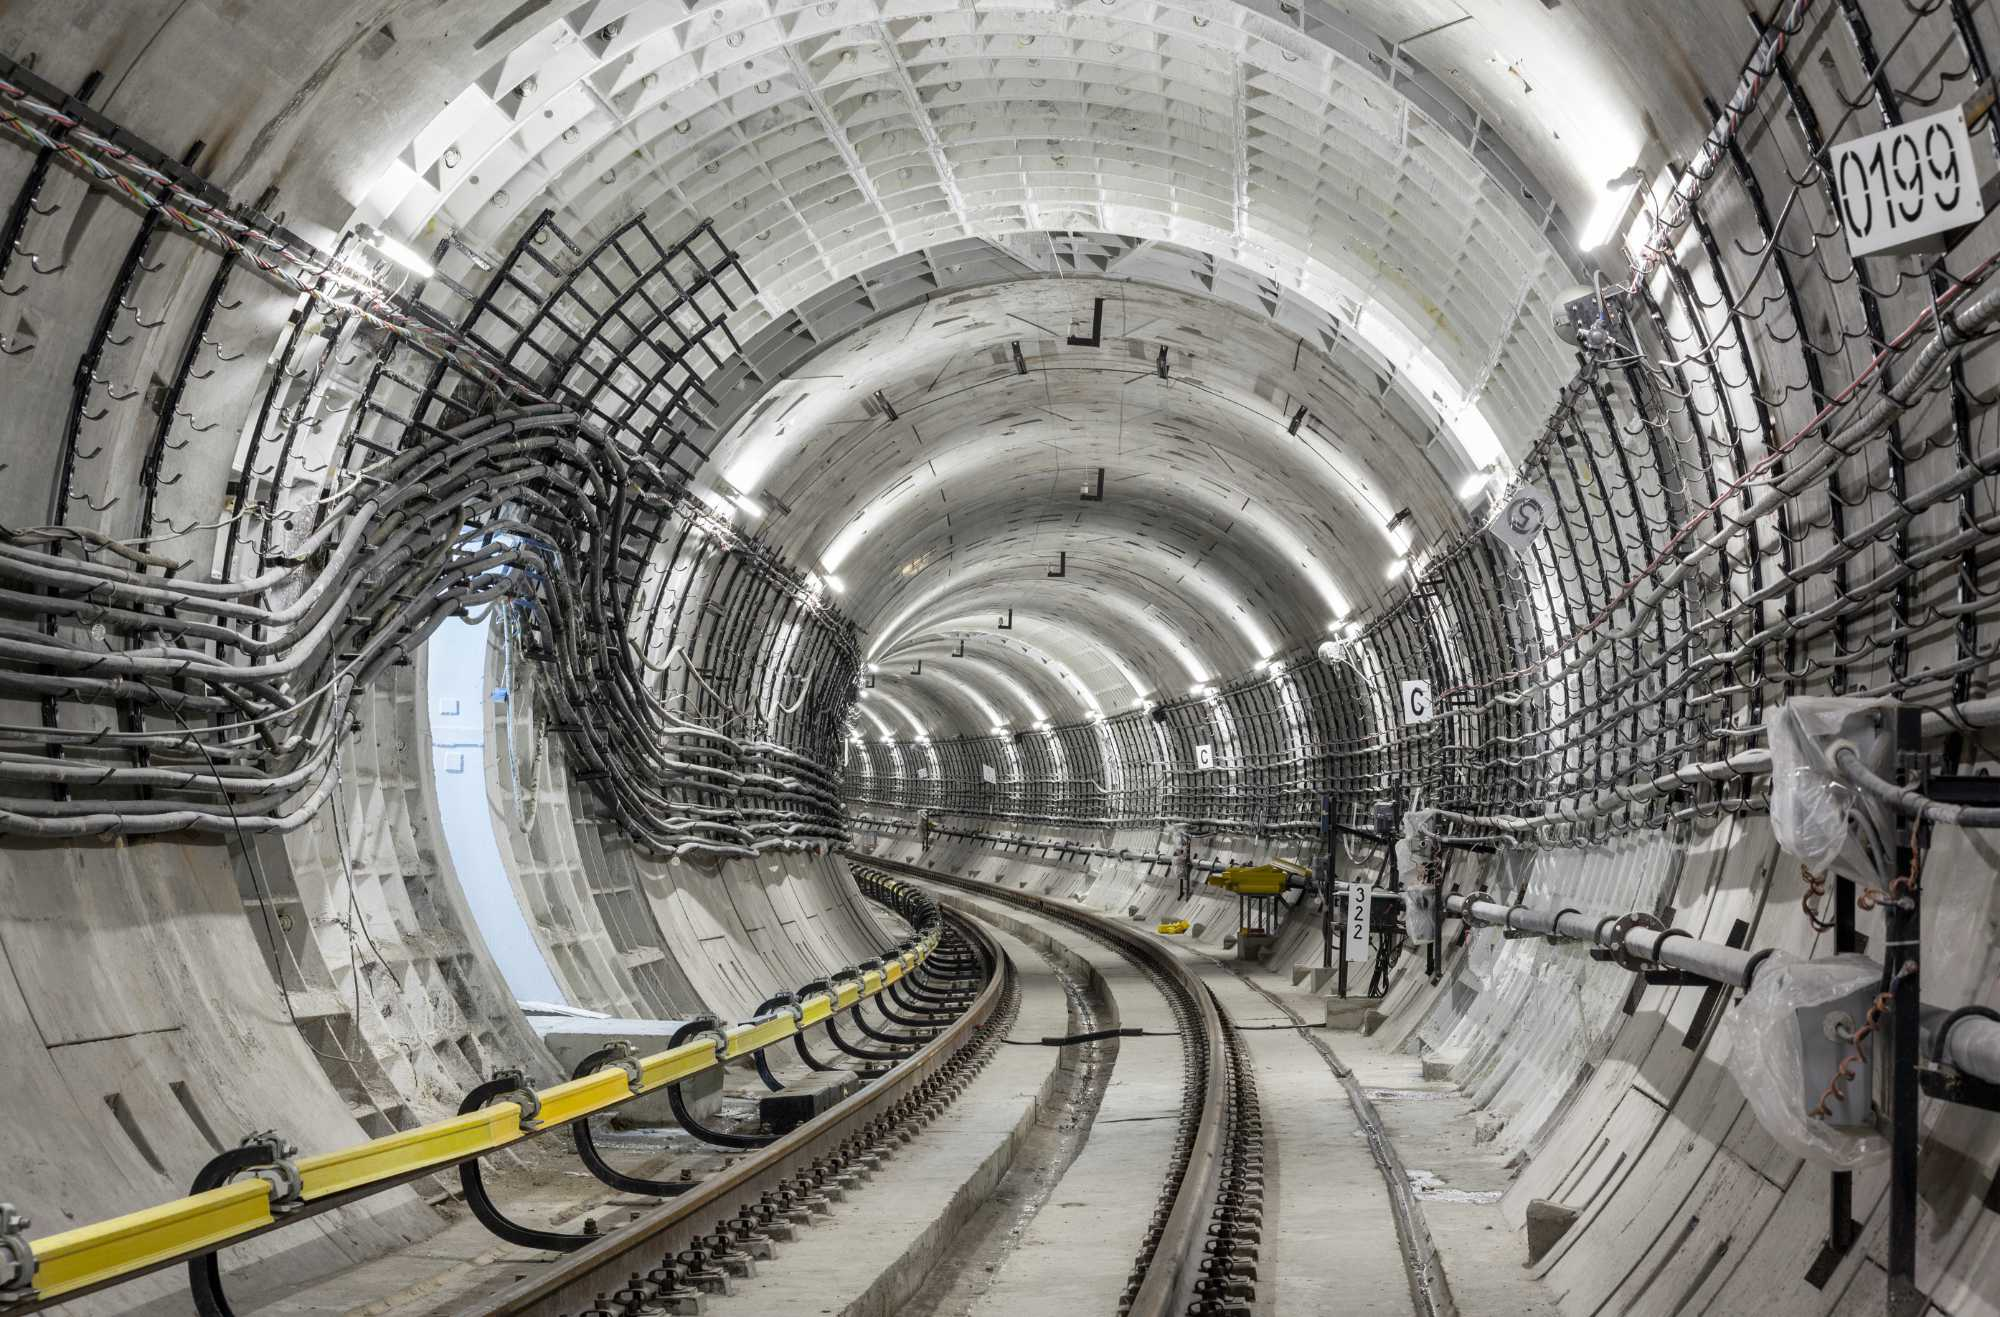 construction-of-the-subway-PKLD9GL.jpg